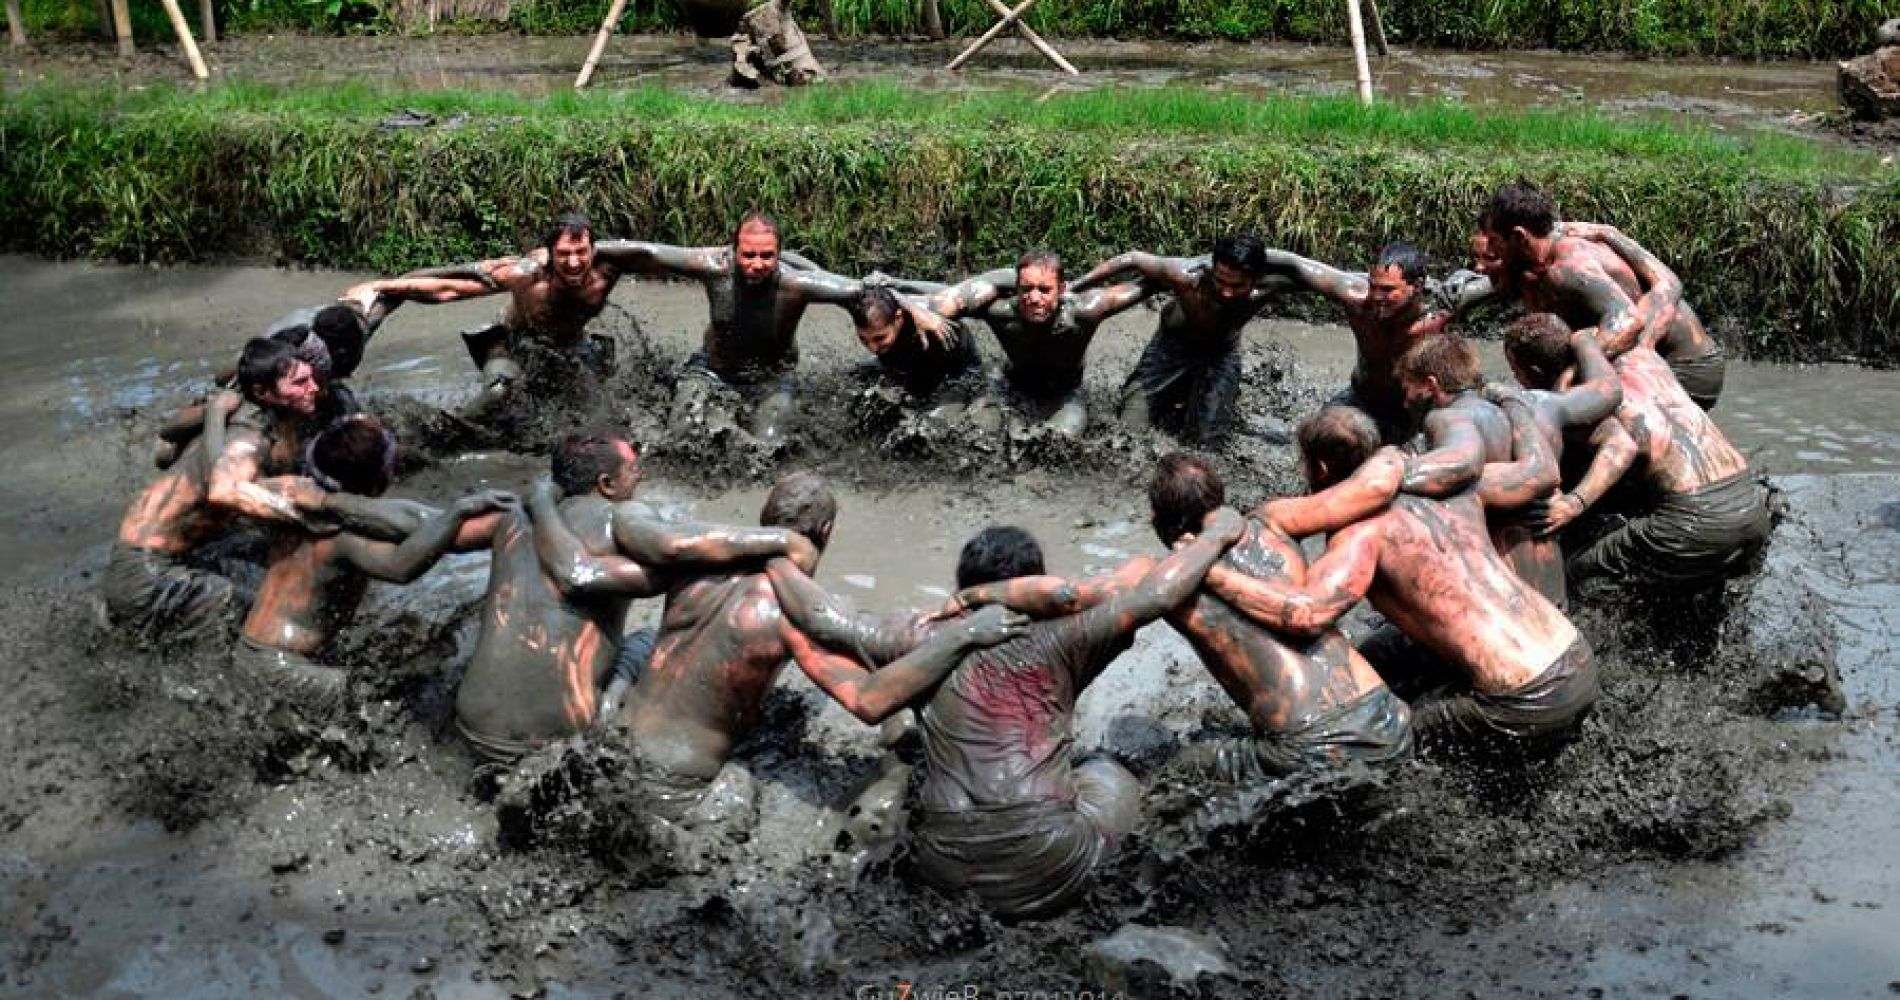 Traditional Balinese Mud Games for Two